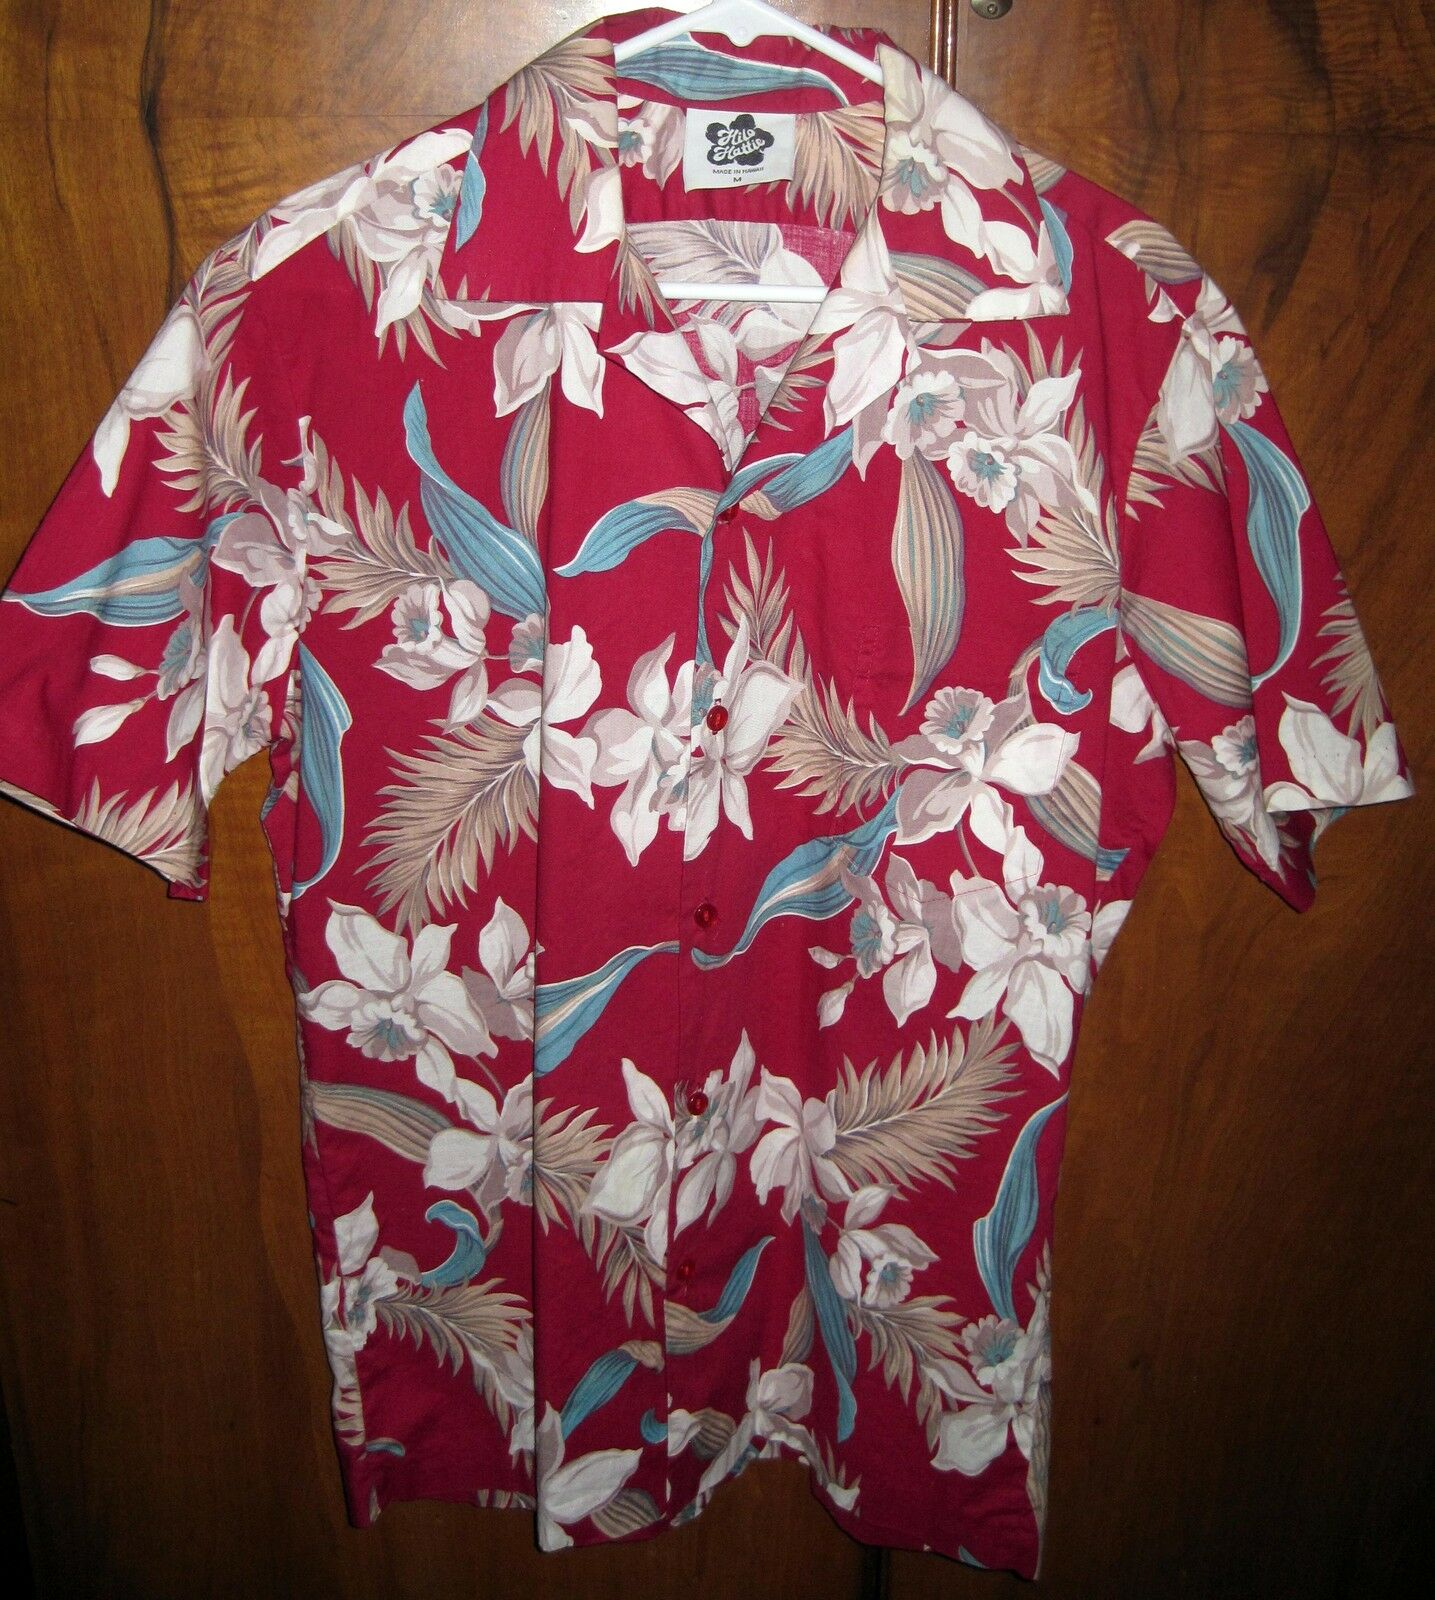 50f20e3a VINTAGE HILO HATTIE HAWAIIAN SHIRT M RED TEAL WHITE COTTON  nqigyt5301-Casual Shirts & Tops